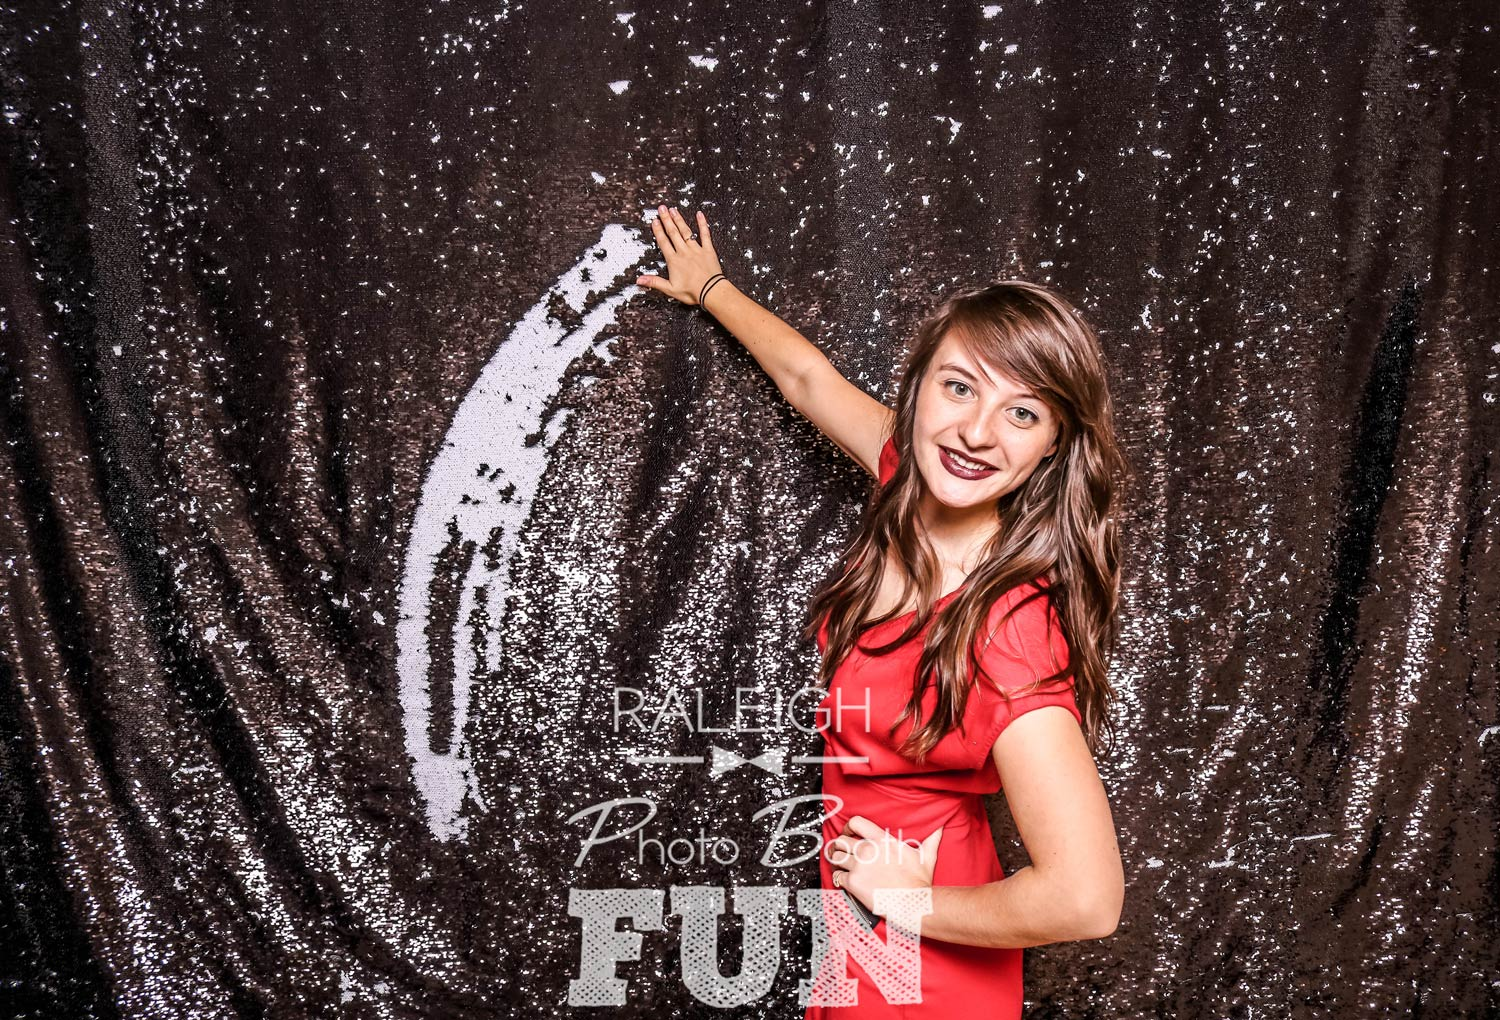 White-Black-Sequin-Raleigh-Photo-Booth-2